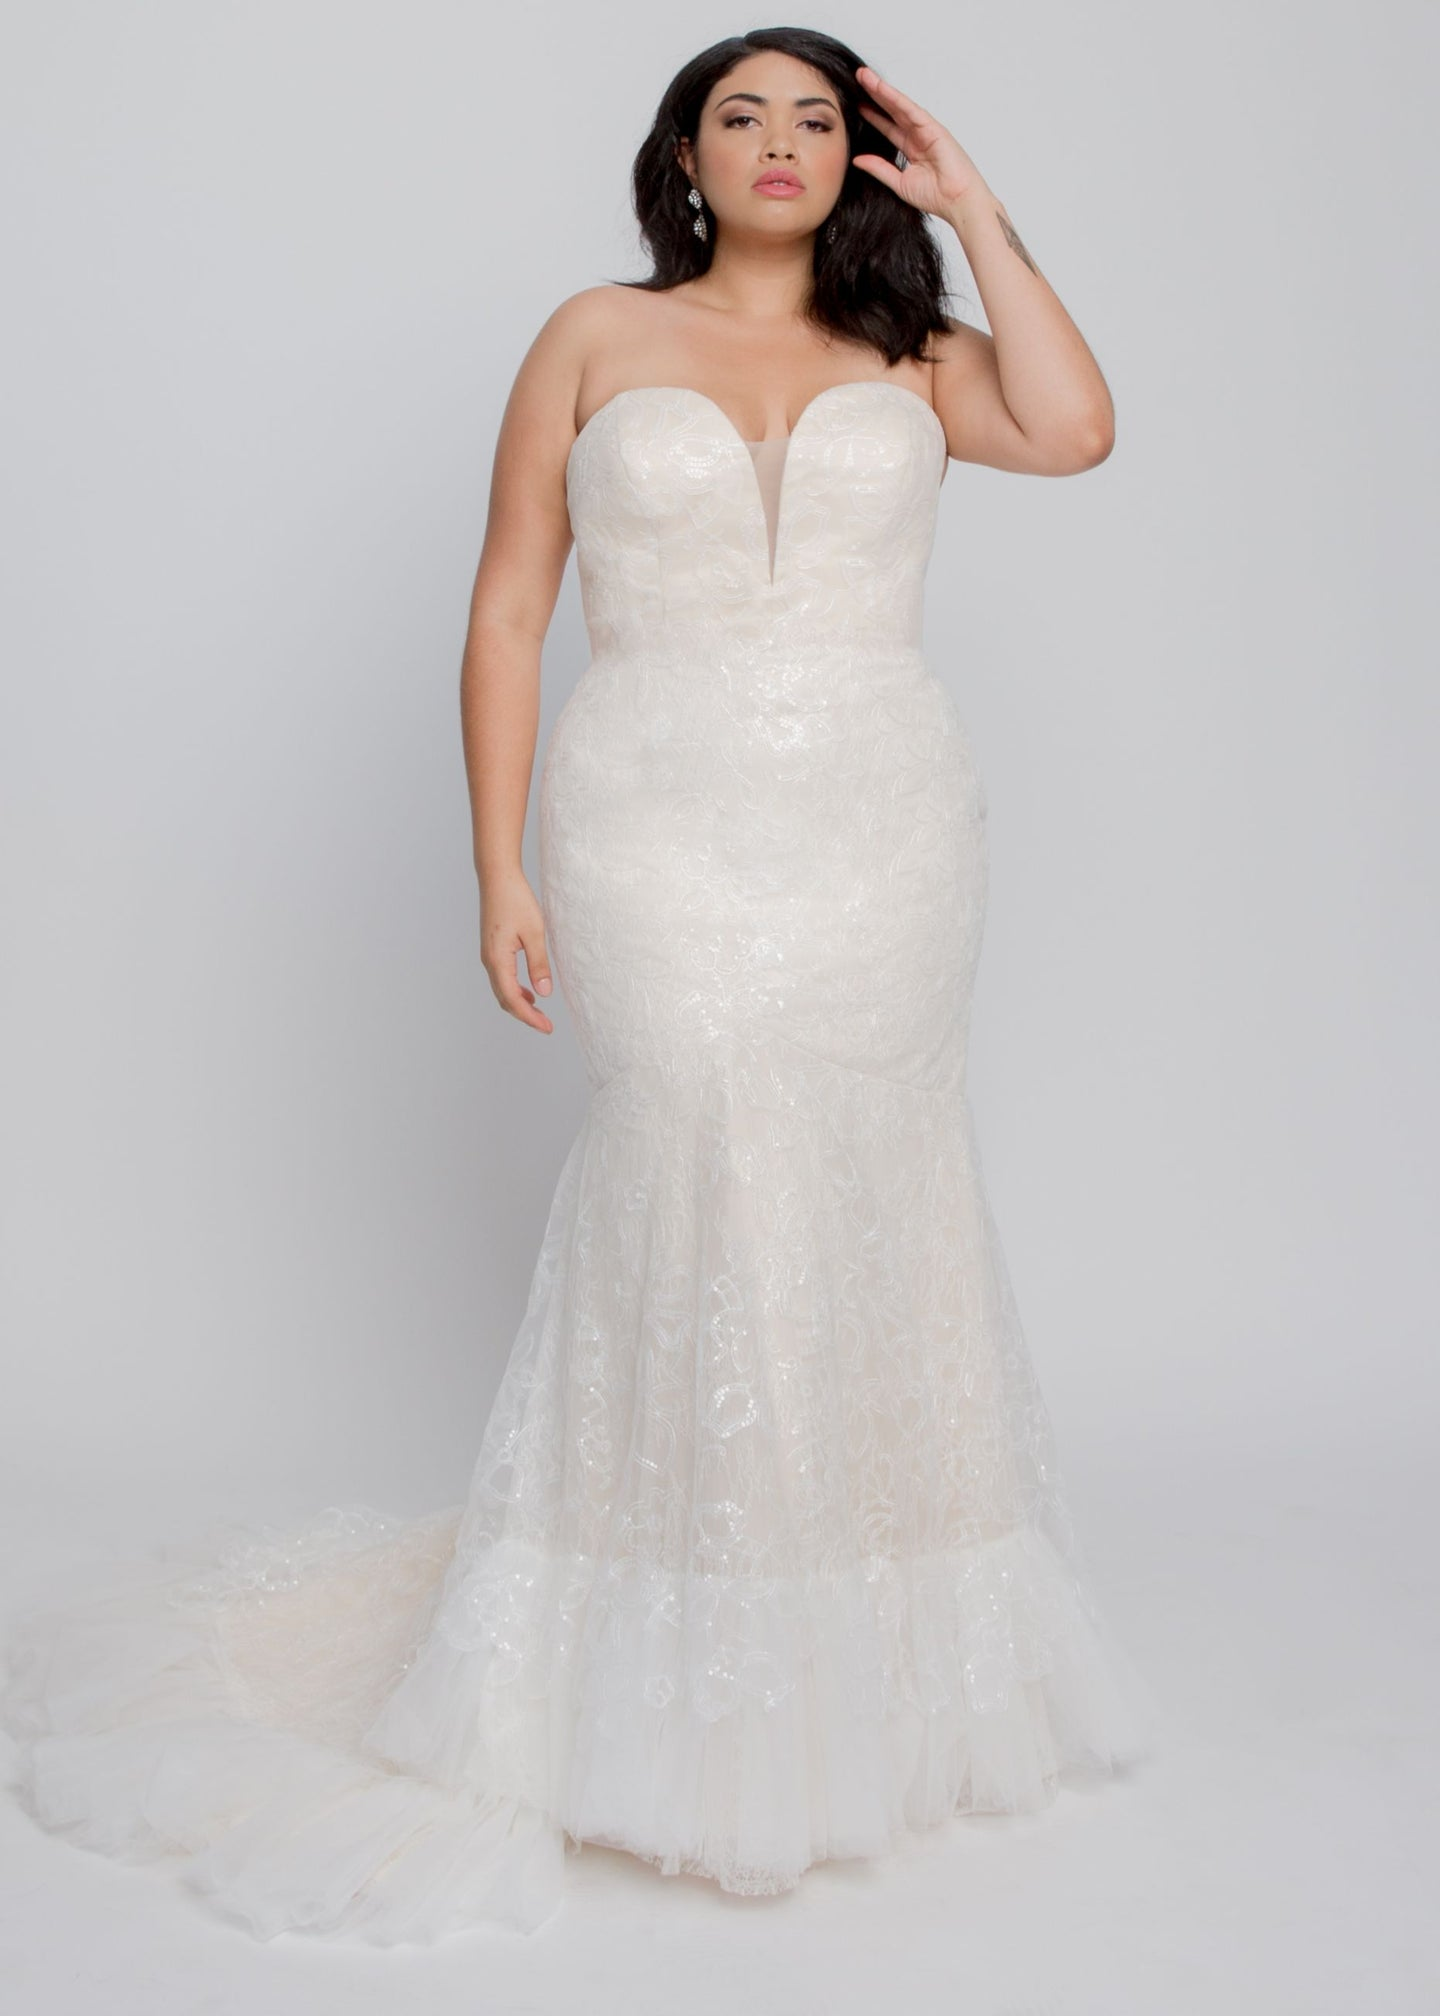 Gorgeous bridal gowns for all body shapes: plus size, curvy, or petite brides. Try on our wedding dresses at home. Size 0-30. Comfortable. Convenient. Fun. Lace or satin. Mermaid or A-line. The Beverly Gown features a champagne lining with lovely beaded, floral lace in a classic gown with sweetheart neckline and fitted trumpet skirt with a chapel train and Tulle detail on hem. The neckline adds a splash of modernity with its plunging V covered with a champagne tulle panel.